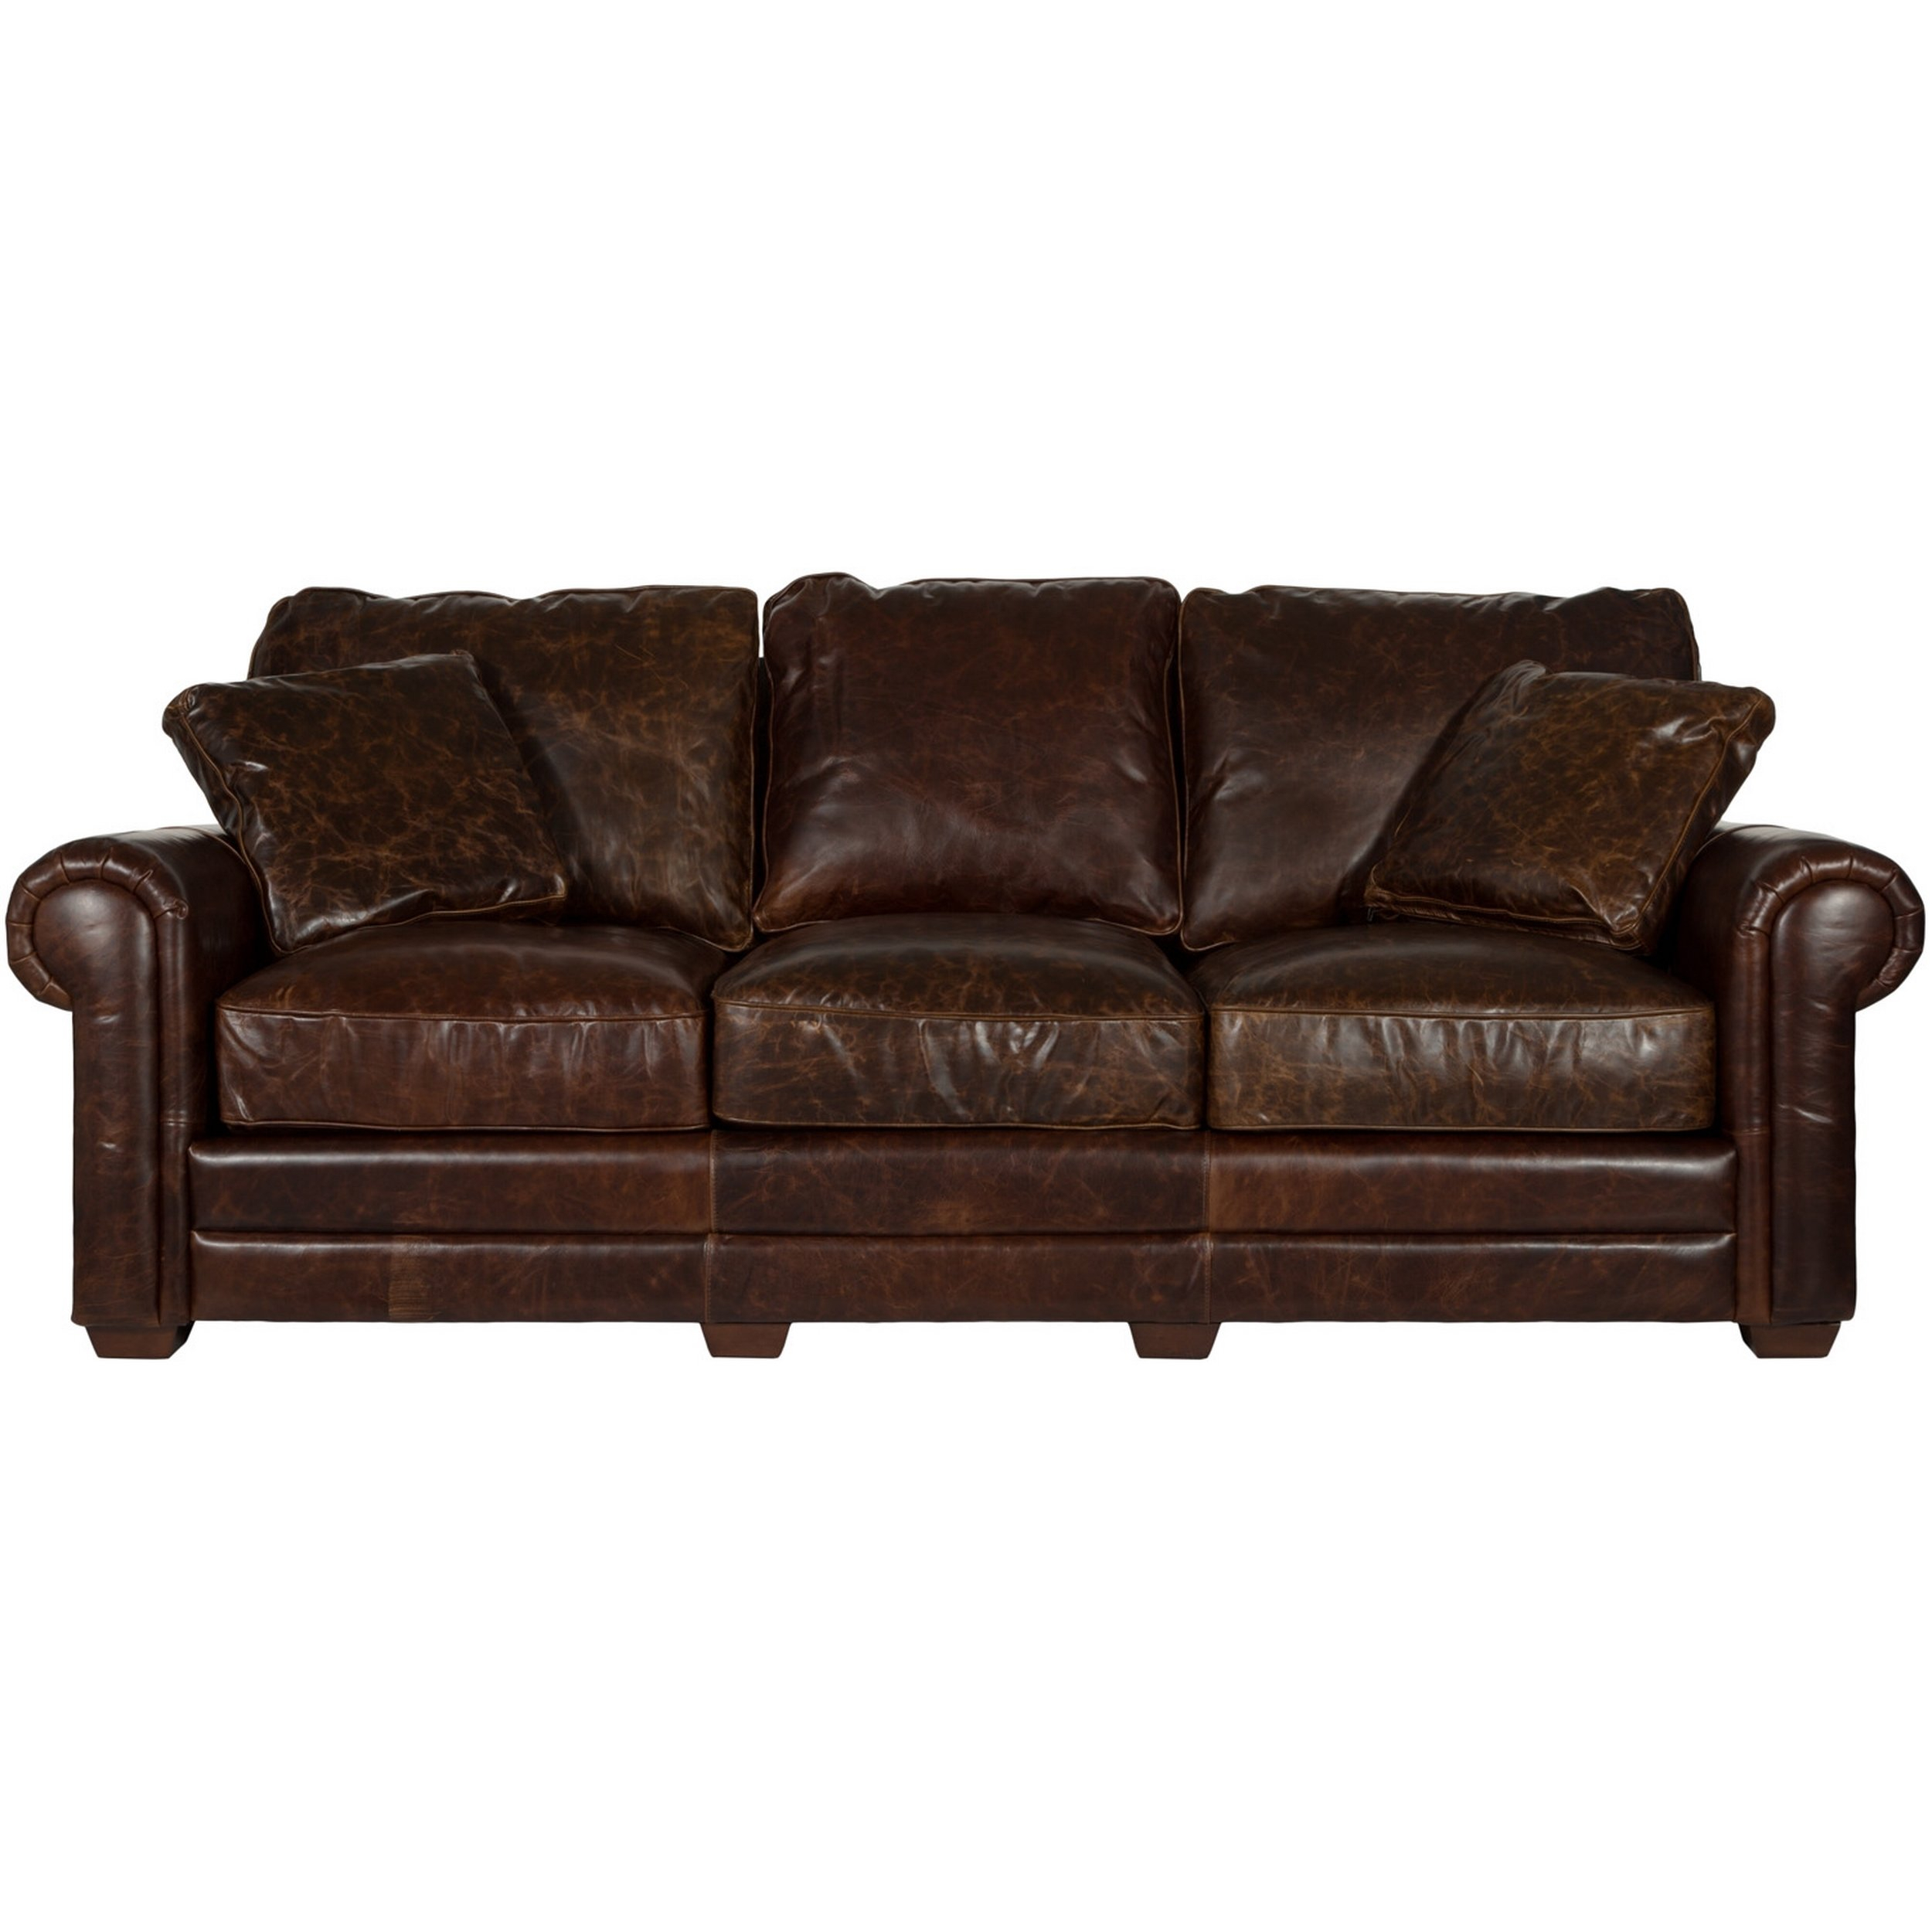 Shop Safavieh Couture High Line Collection Walter Cocoa Leather Sofa Throughout Walter Leather Sofa Chairs (Image 10 of 20)